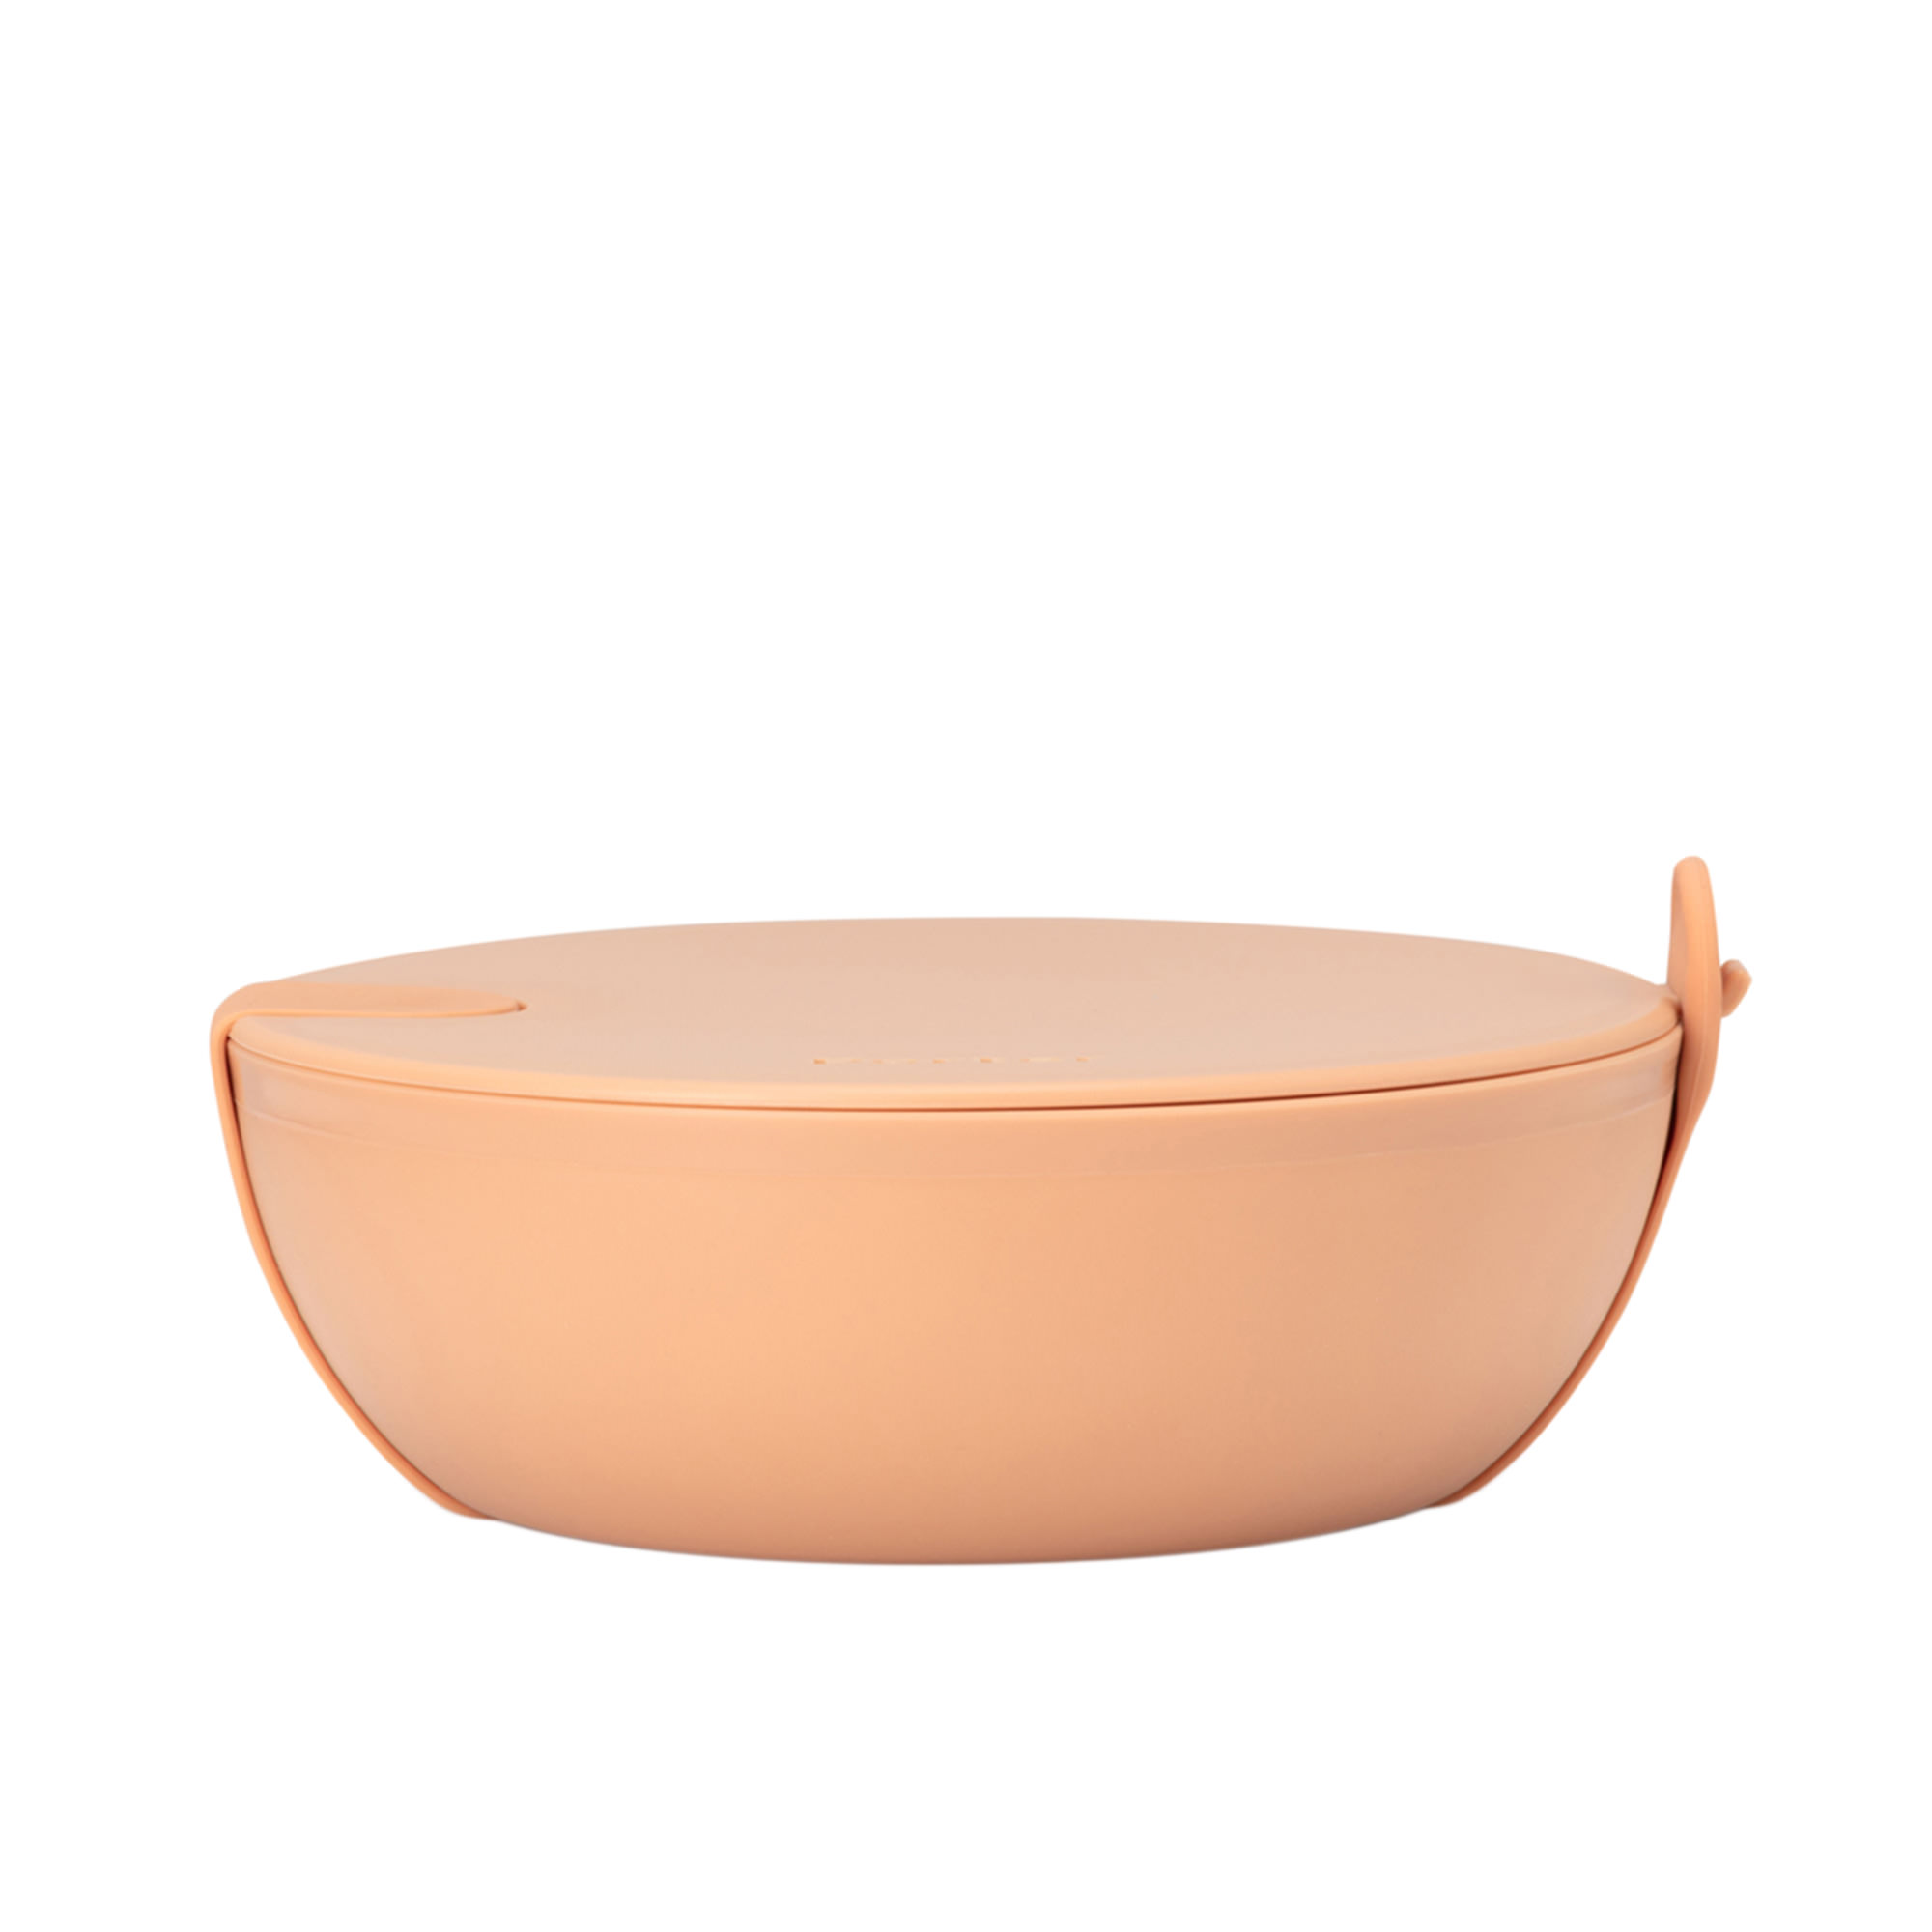 W&P Porter Plastic Lunch Bowl 1L Tan